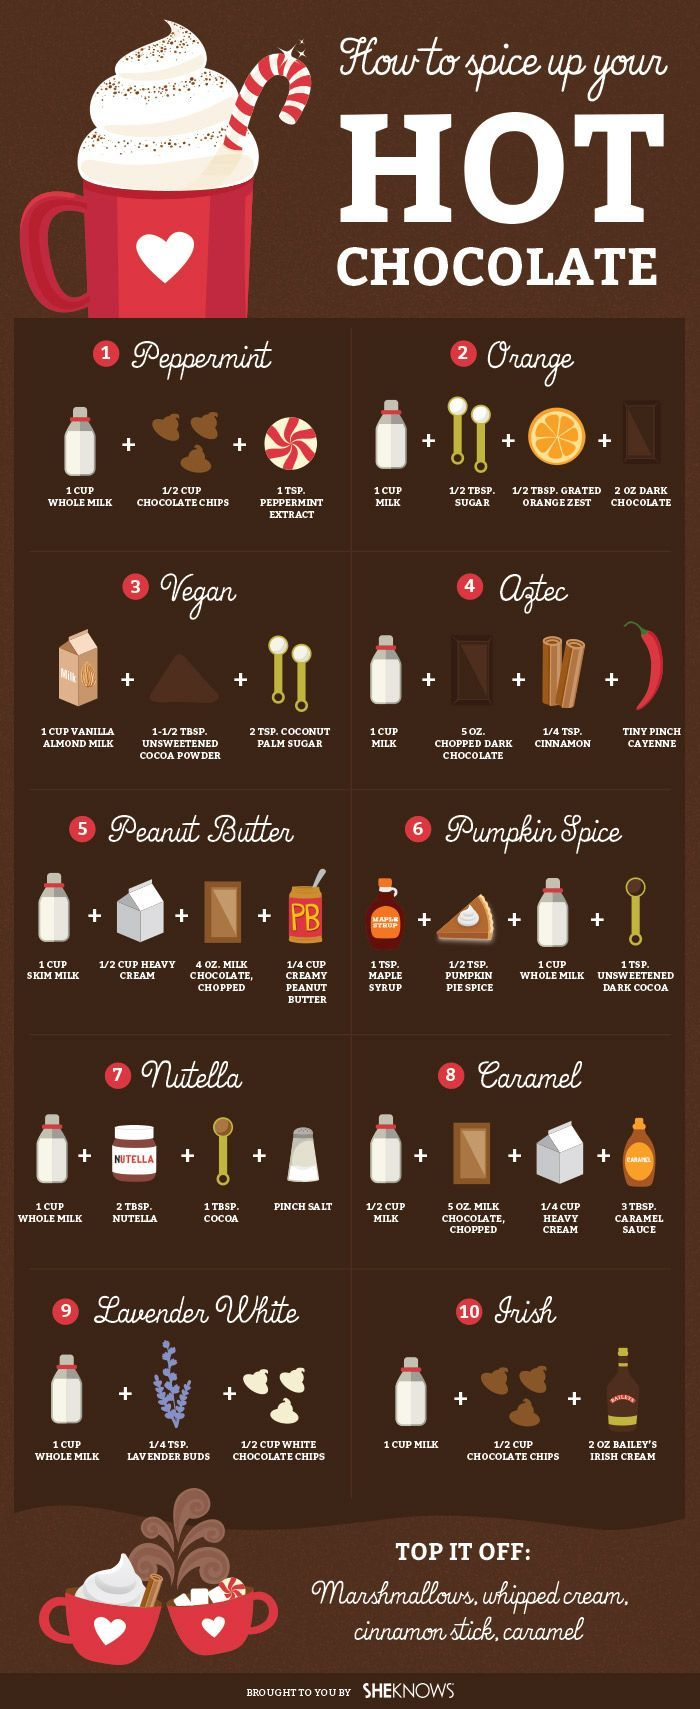 How to spice up your Hot Chocolate~A flavor for everyone....Peppermint, Orange Vegan, Aztec, Peanut Butter, Pumpkin, Lavender and White Chocolate and Irish!